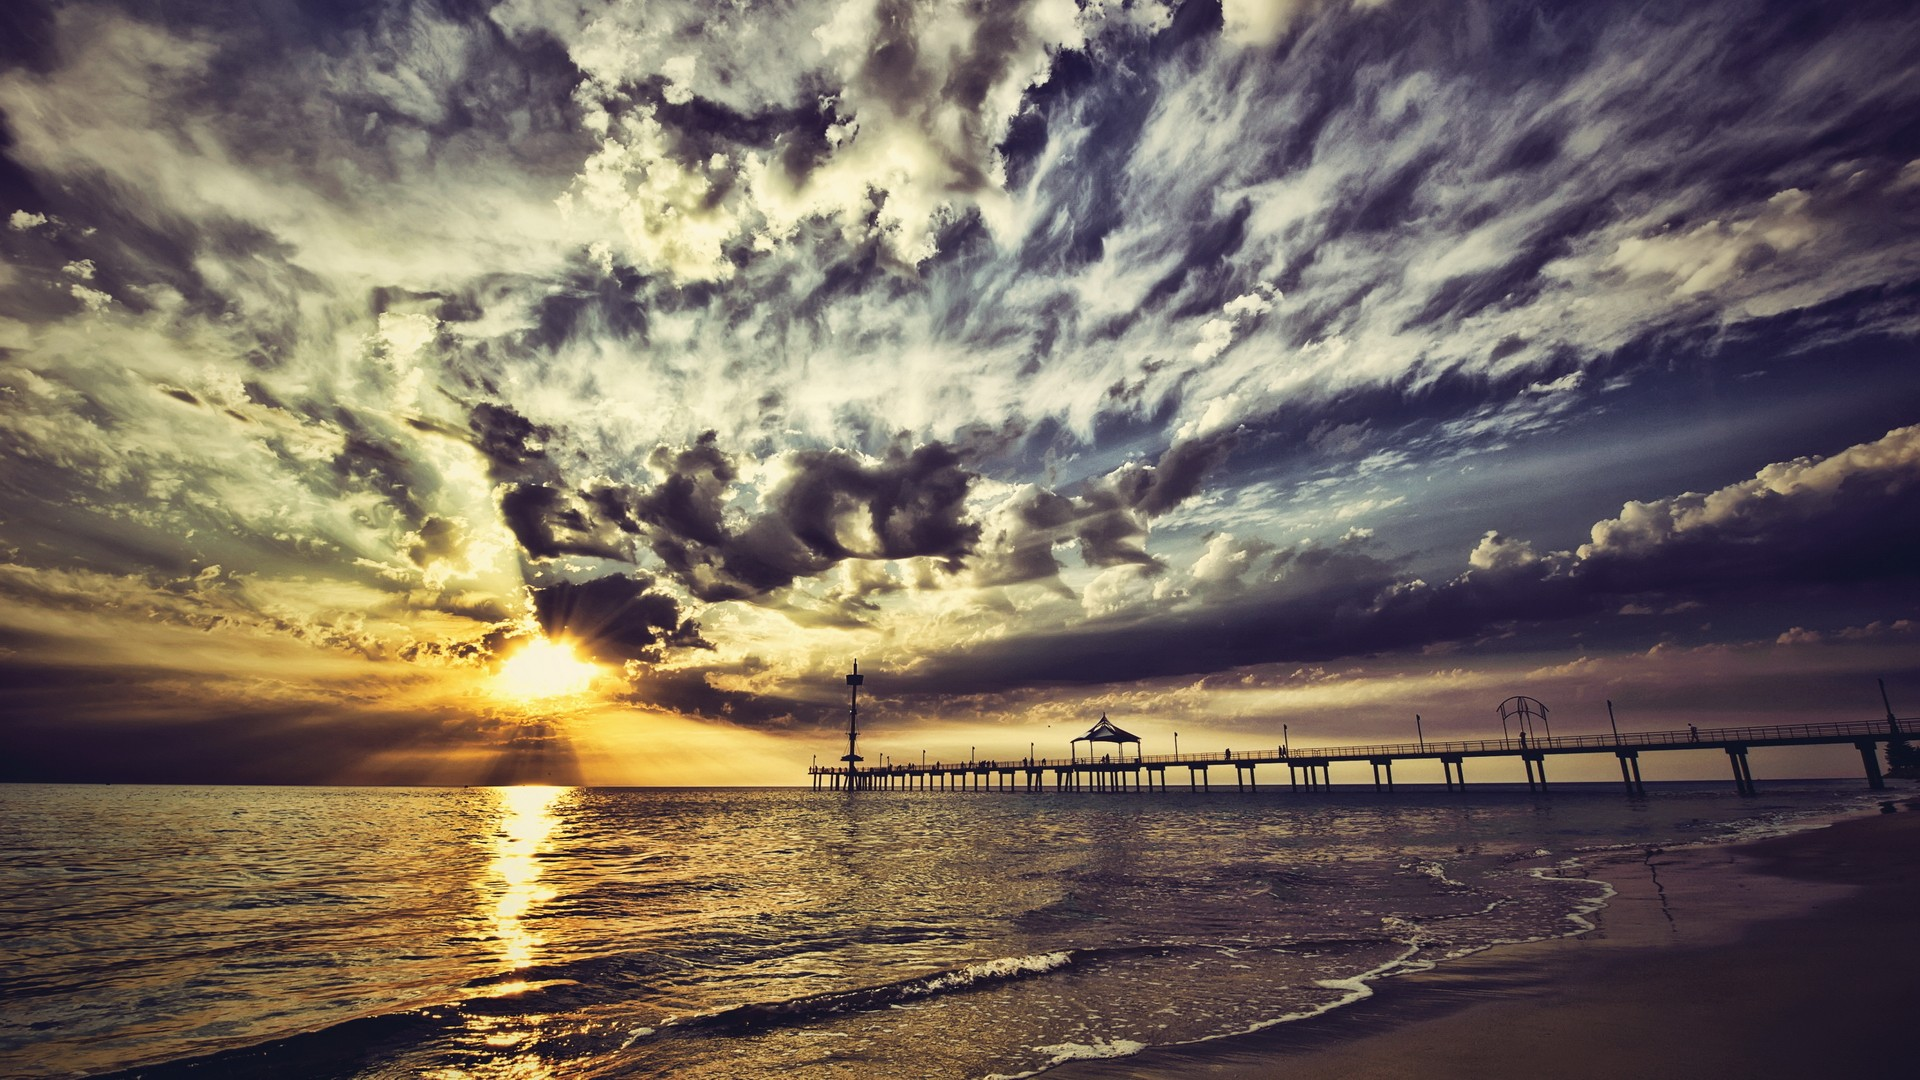 Magnificent Hd 40593. Category: Beach